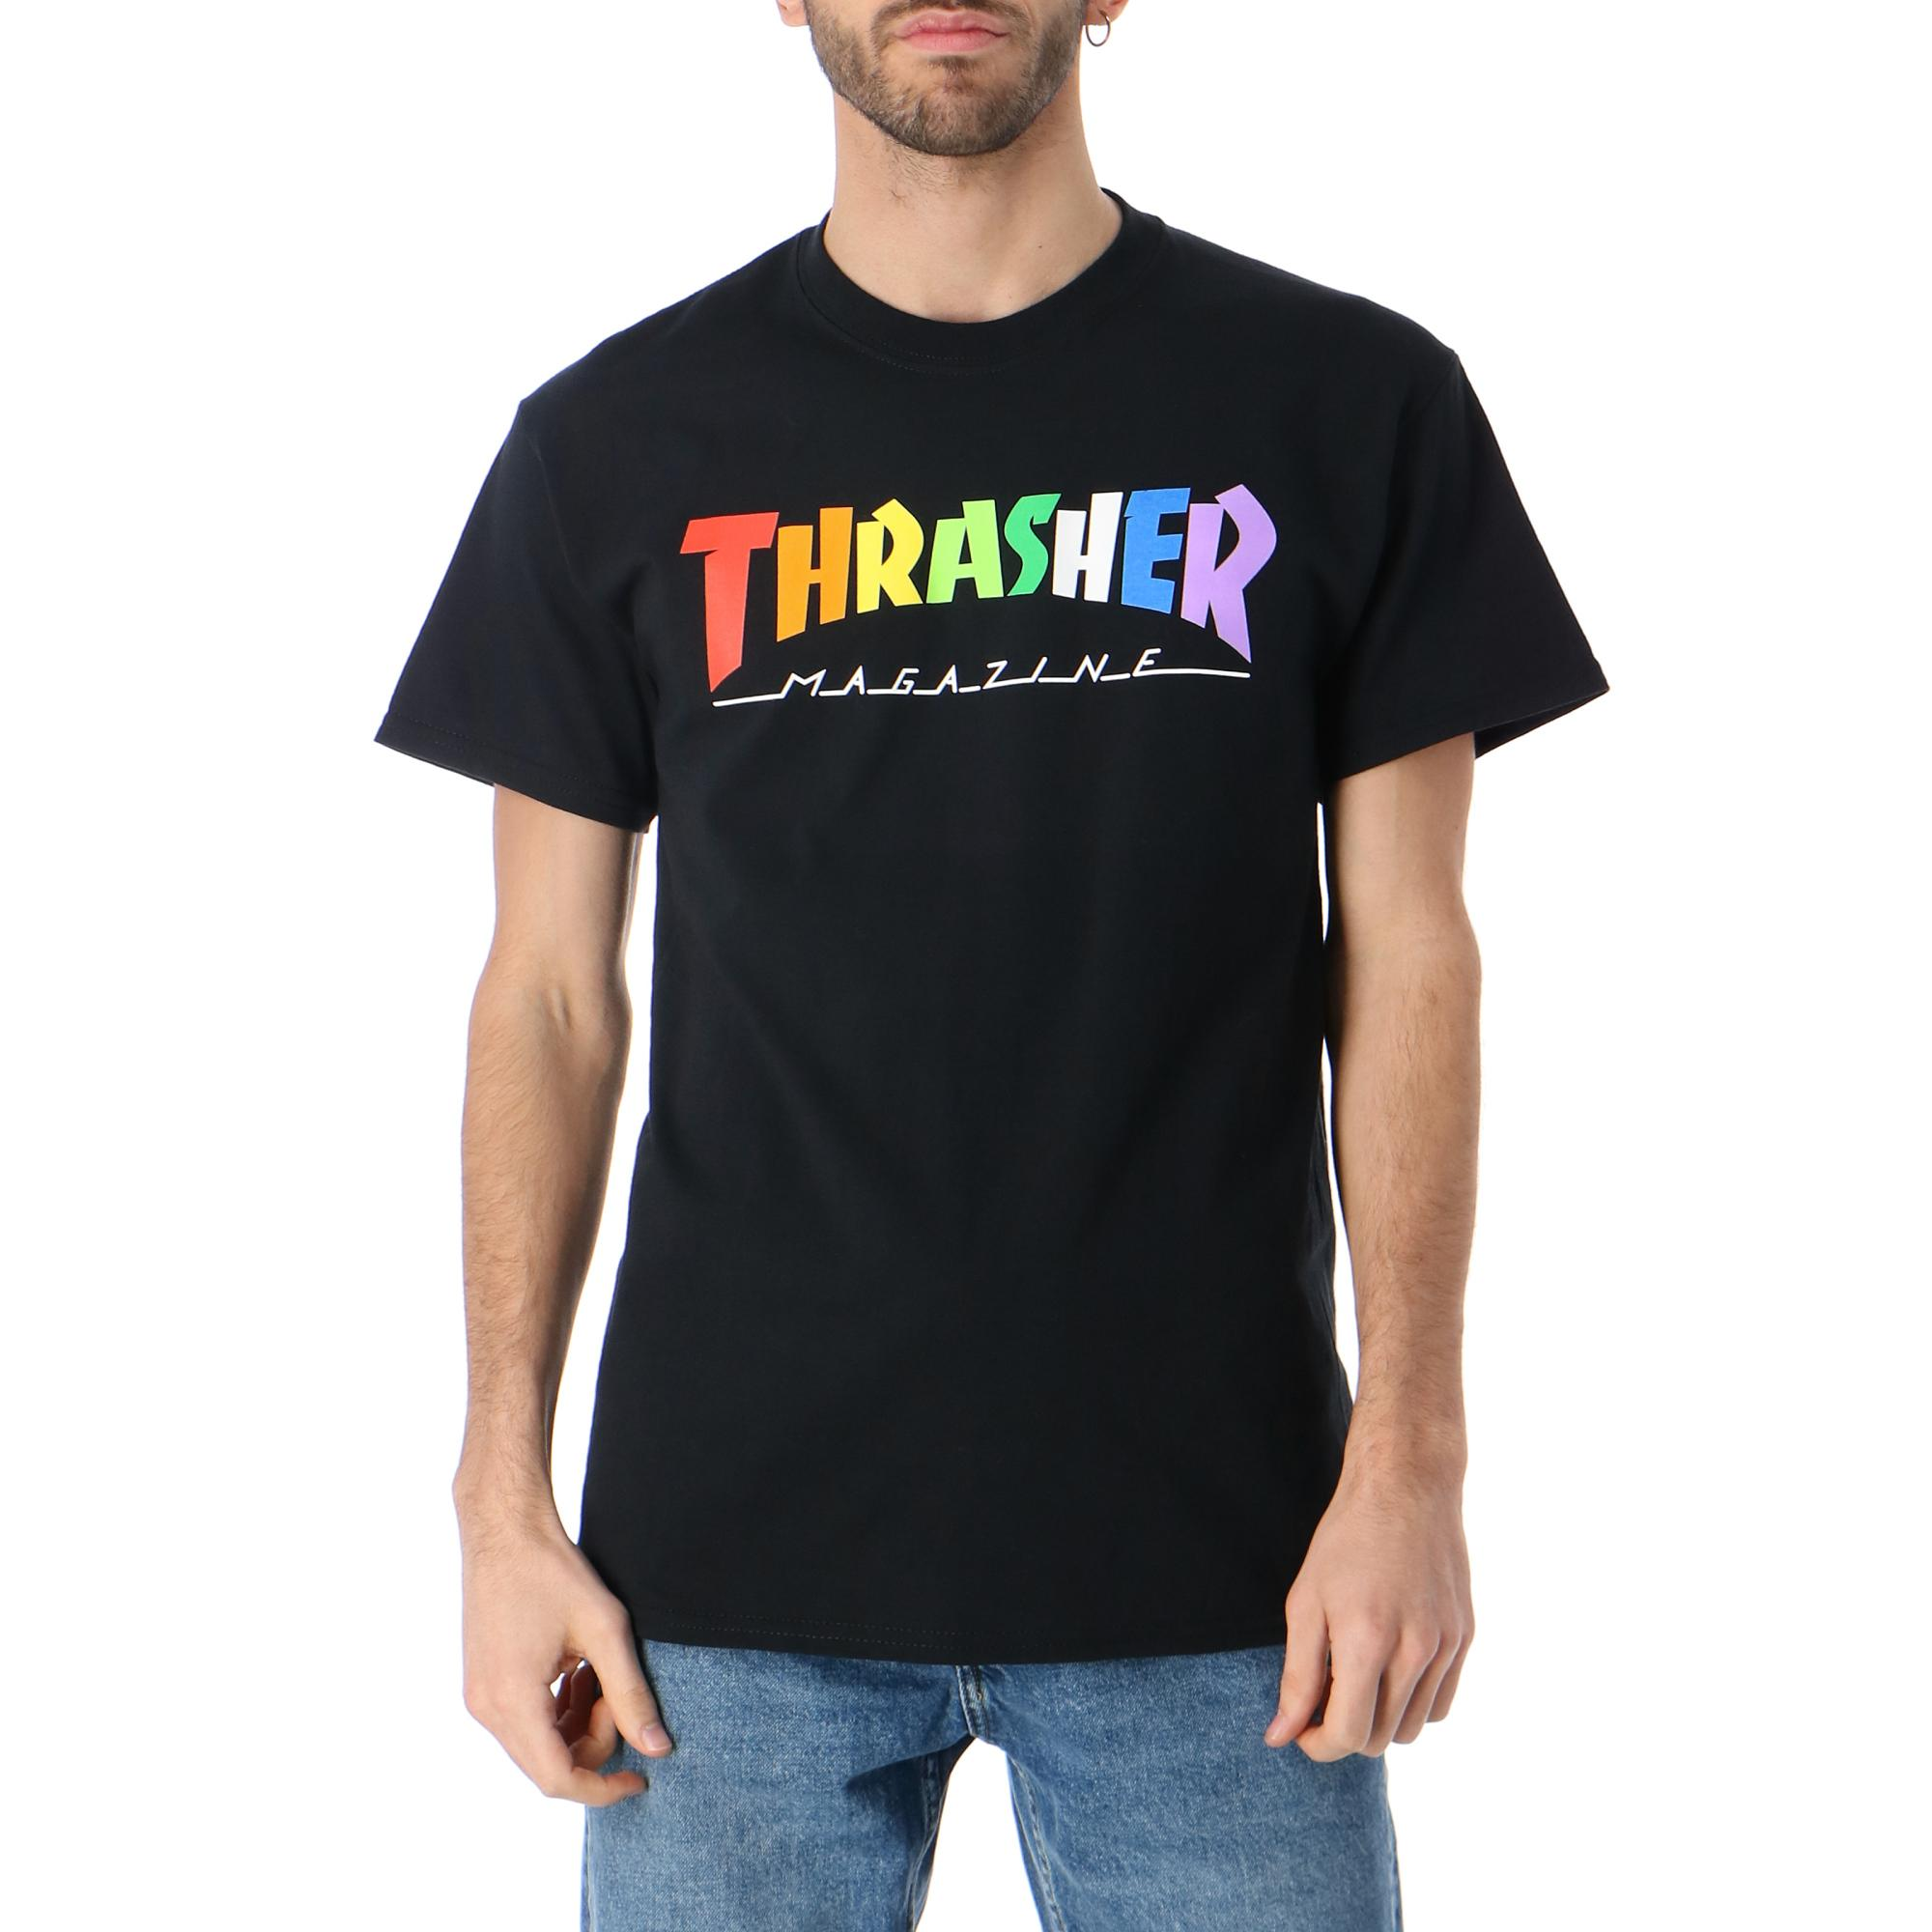 Thrasher Rainbow Mag S/s Black